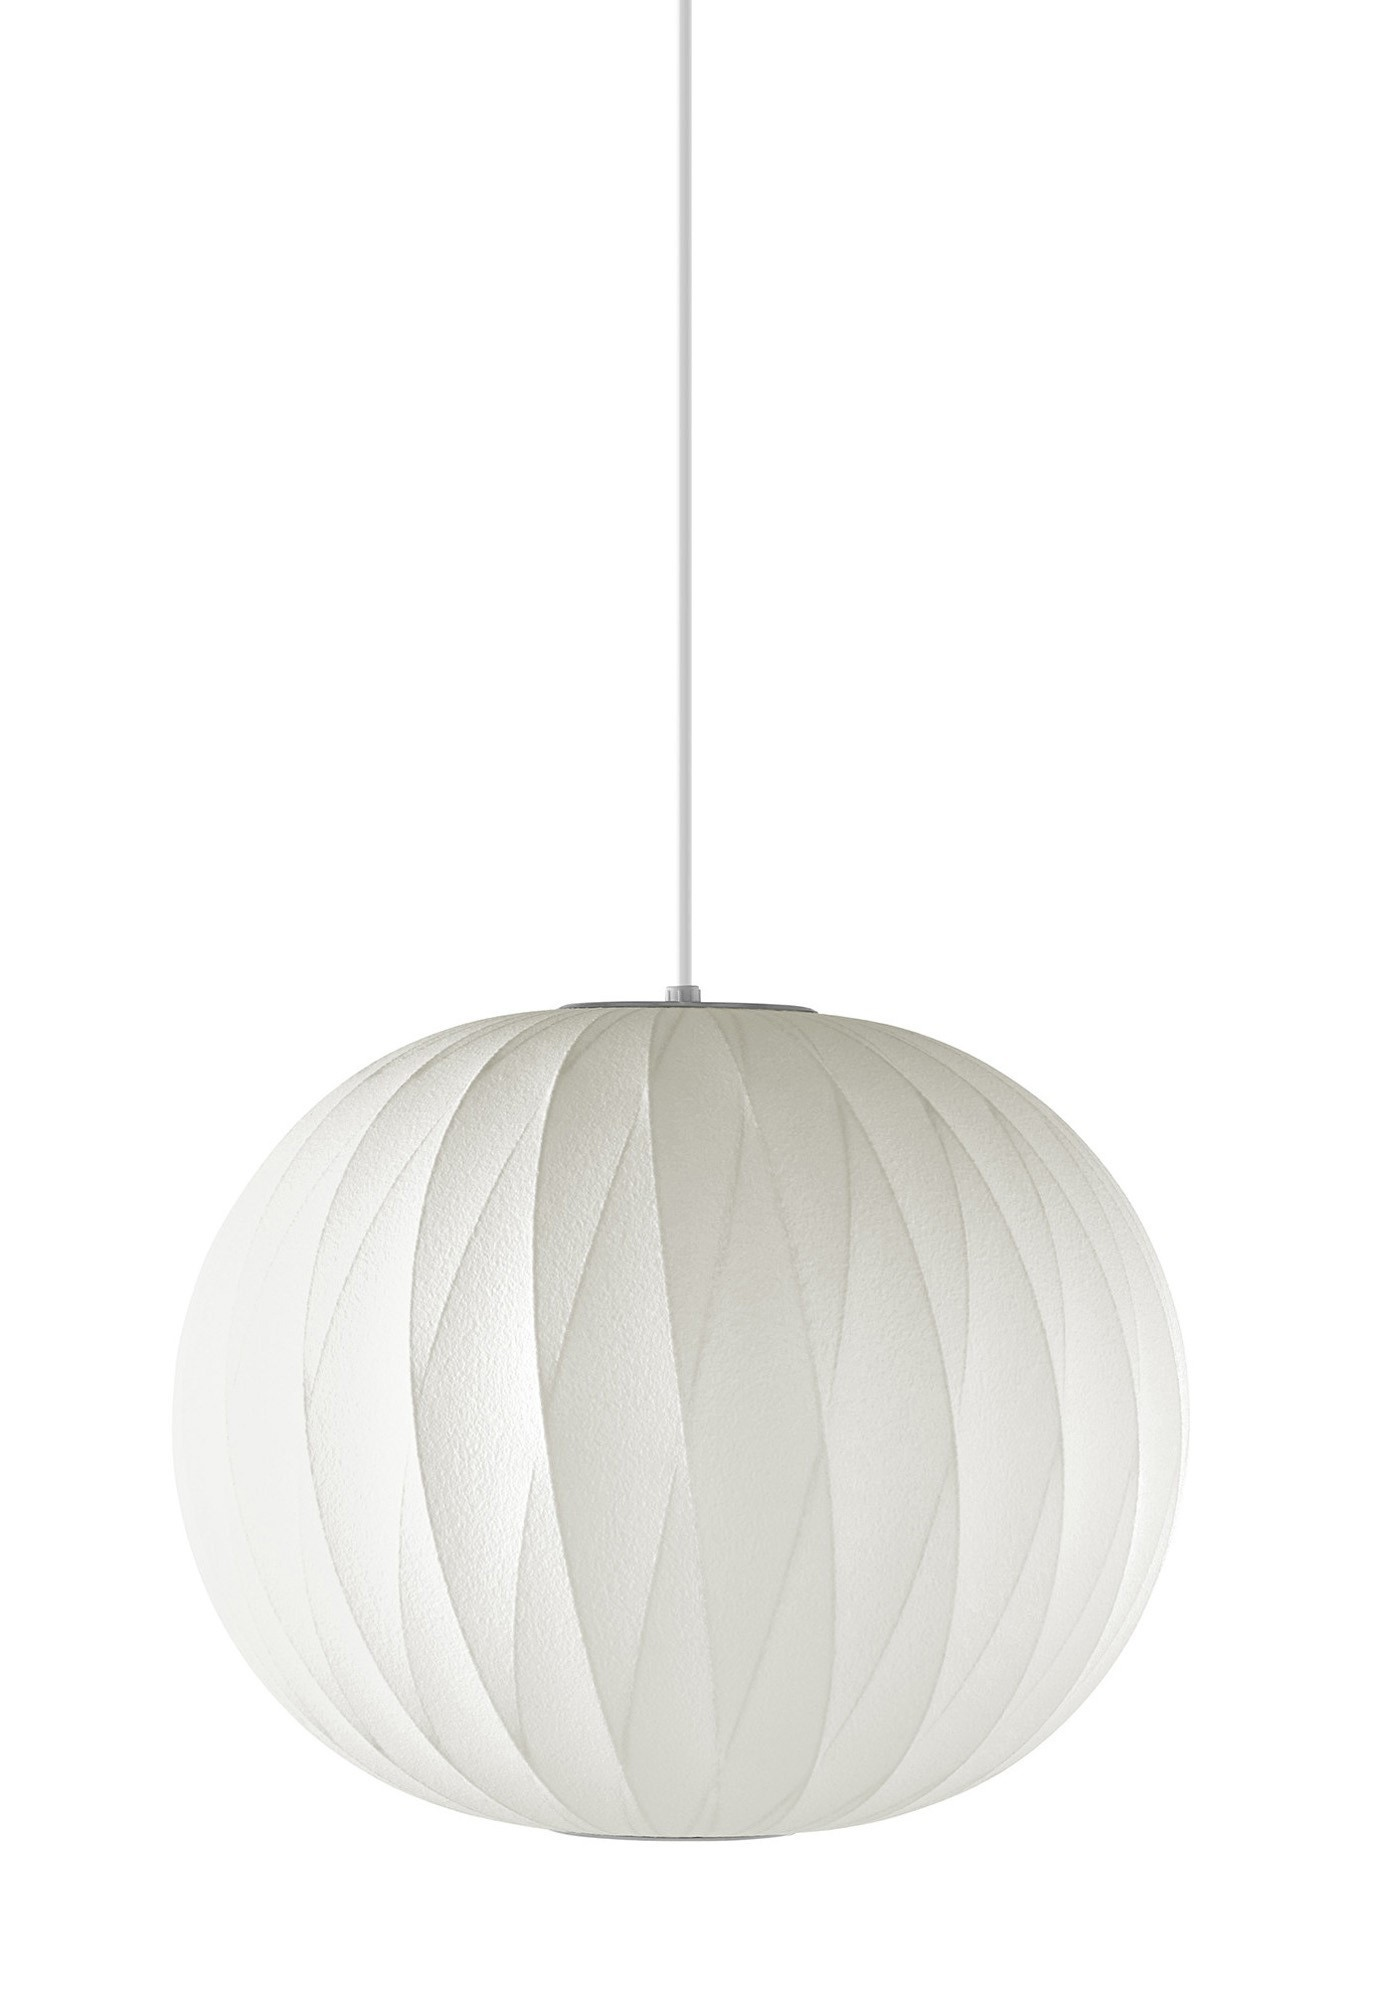 Herman miller nelson ball crisscross bubble lamp pendant